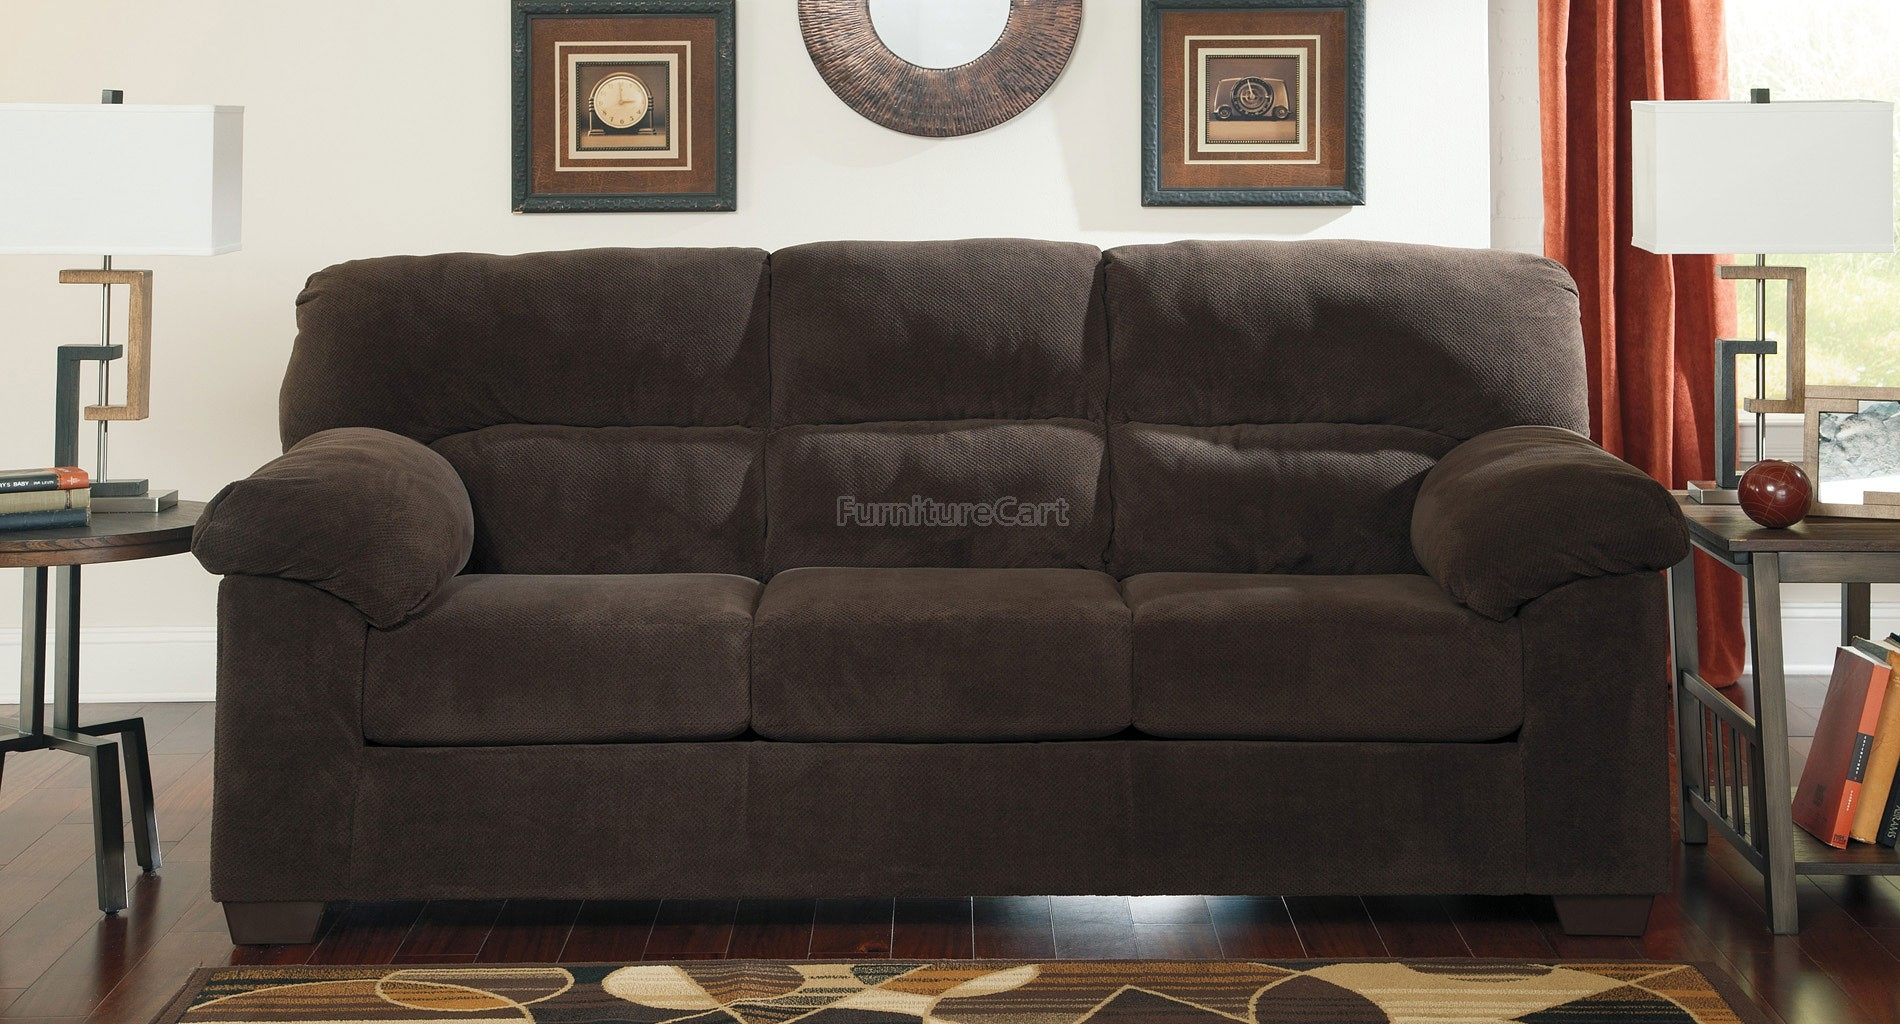 Decor Fascinating Benchcraft Sofa With Luxury Shapes For Living For Berkline Sofa Recliner (#8 of 12)